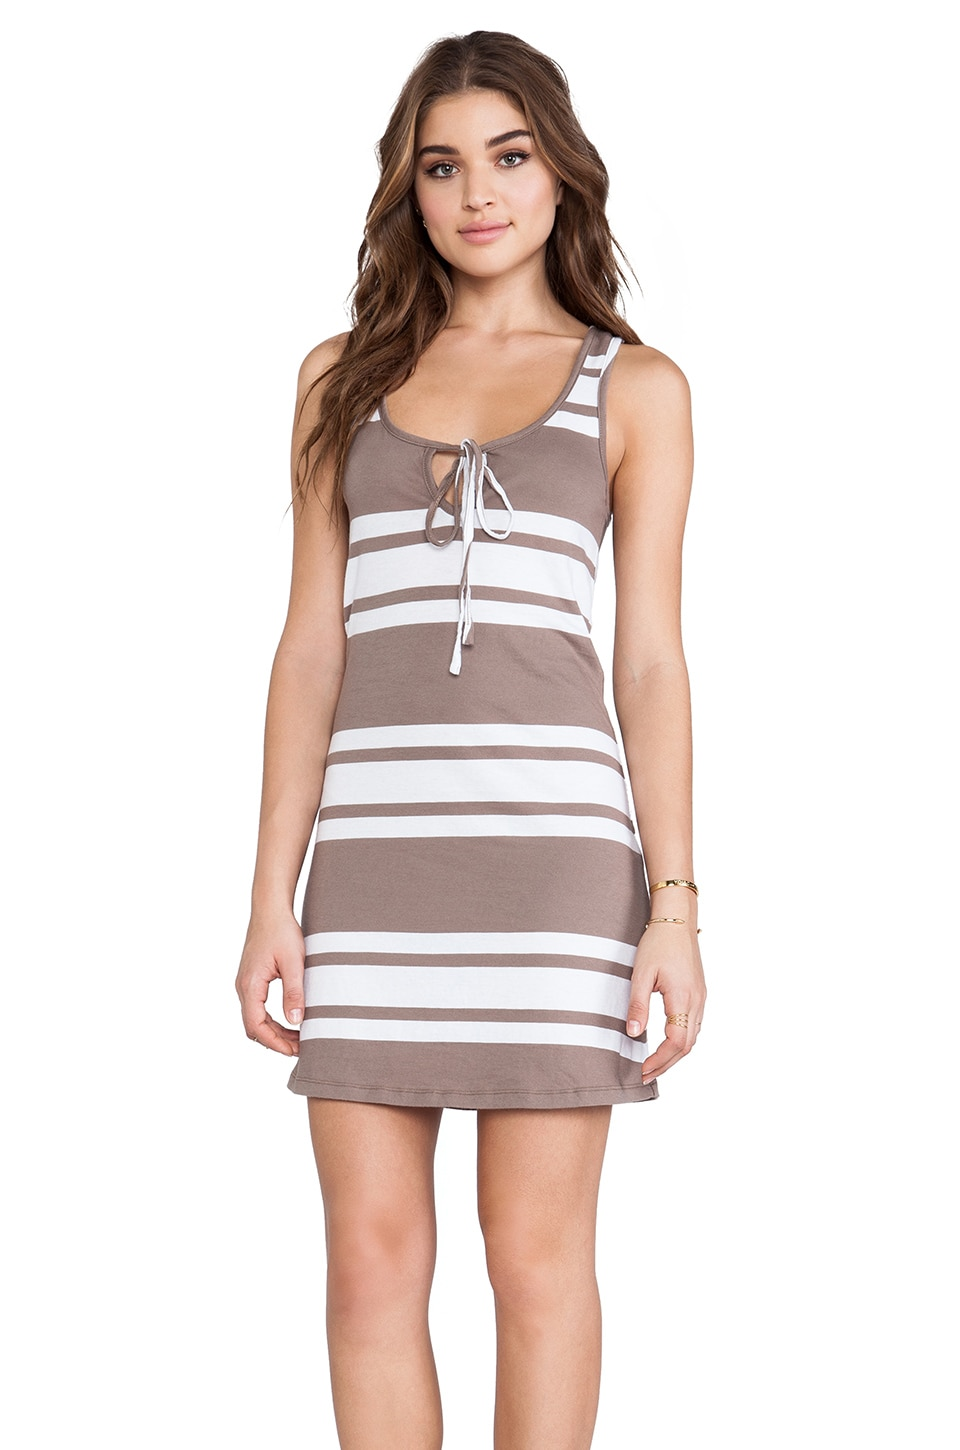 Bobi Light Weight Jersey Mini Dress in Java & White